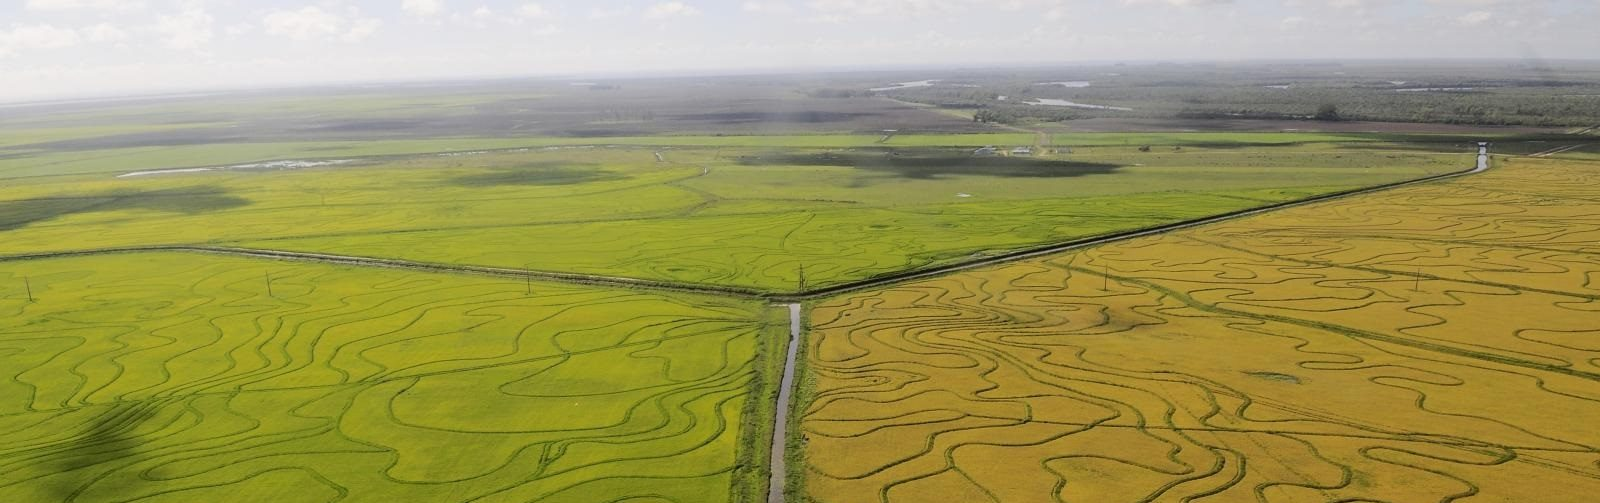 On foresight and trade-off analysis for agriculture and food systems